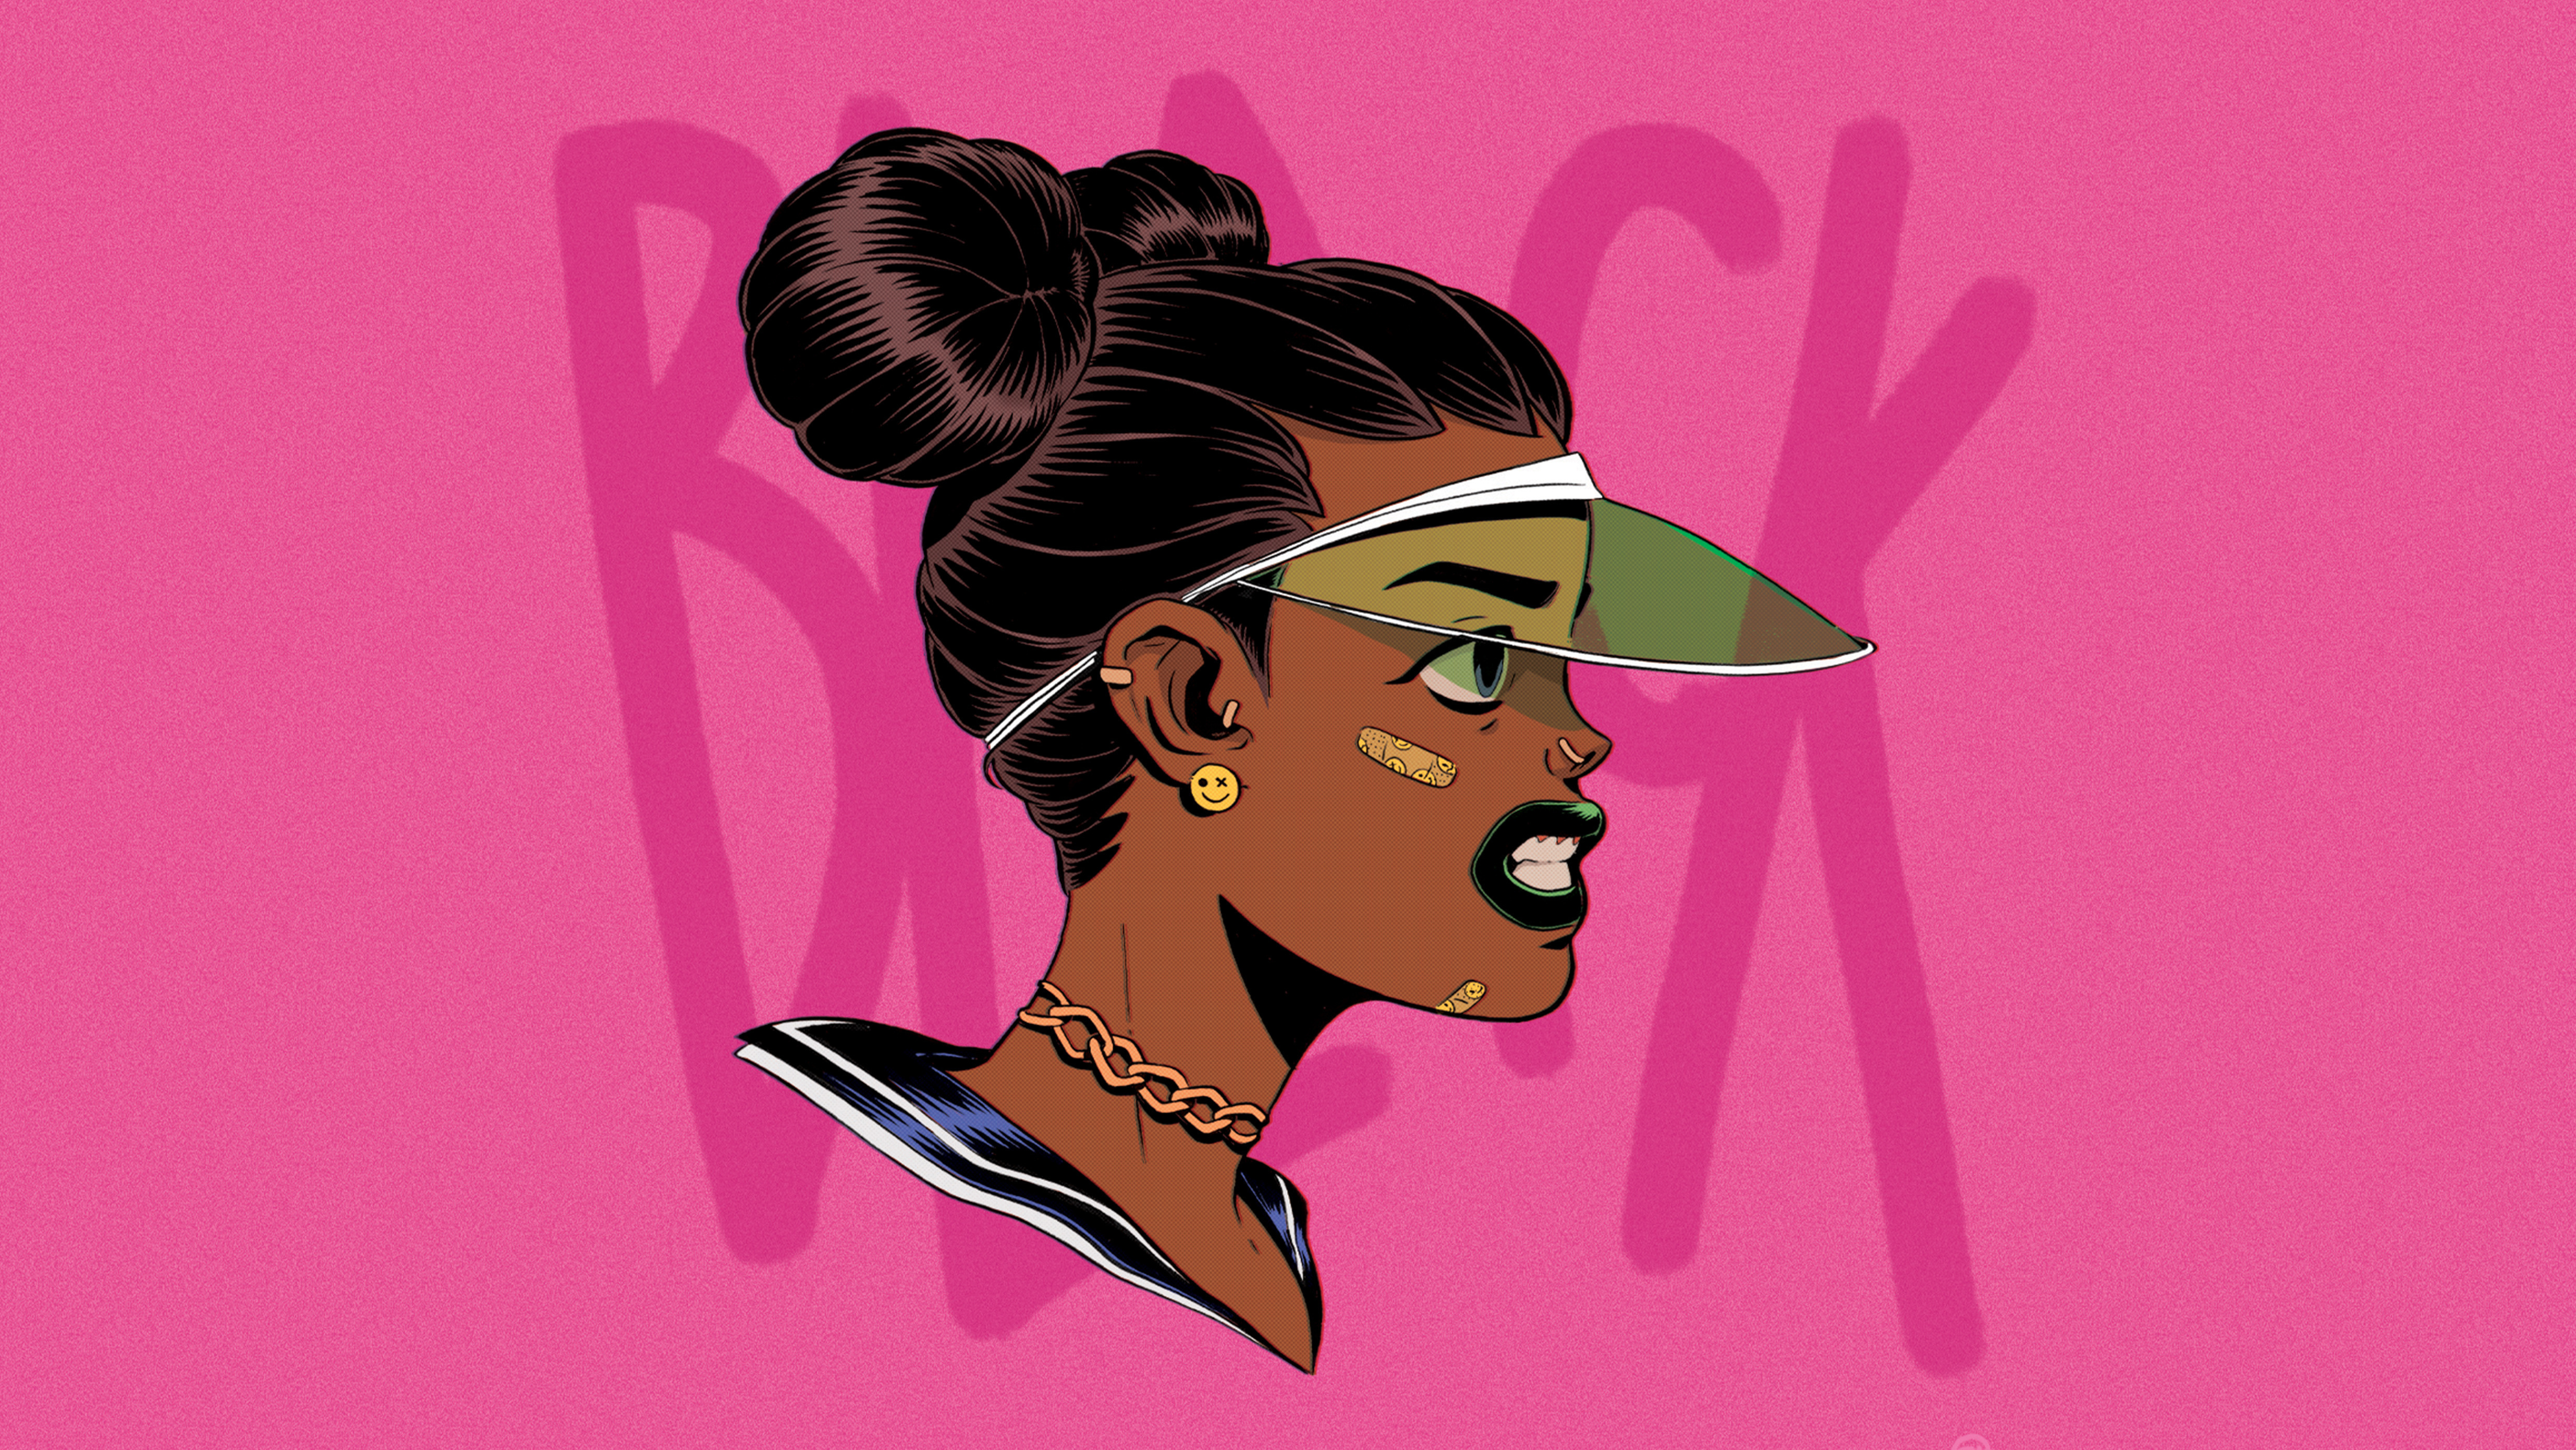 Illustration by Tyrell Waiters